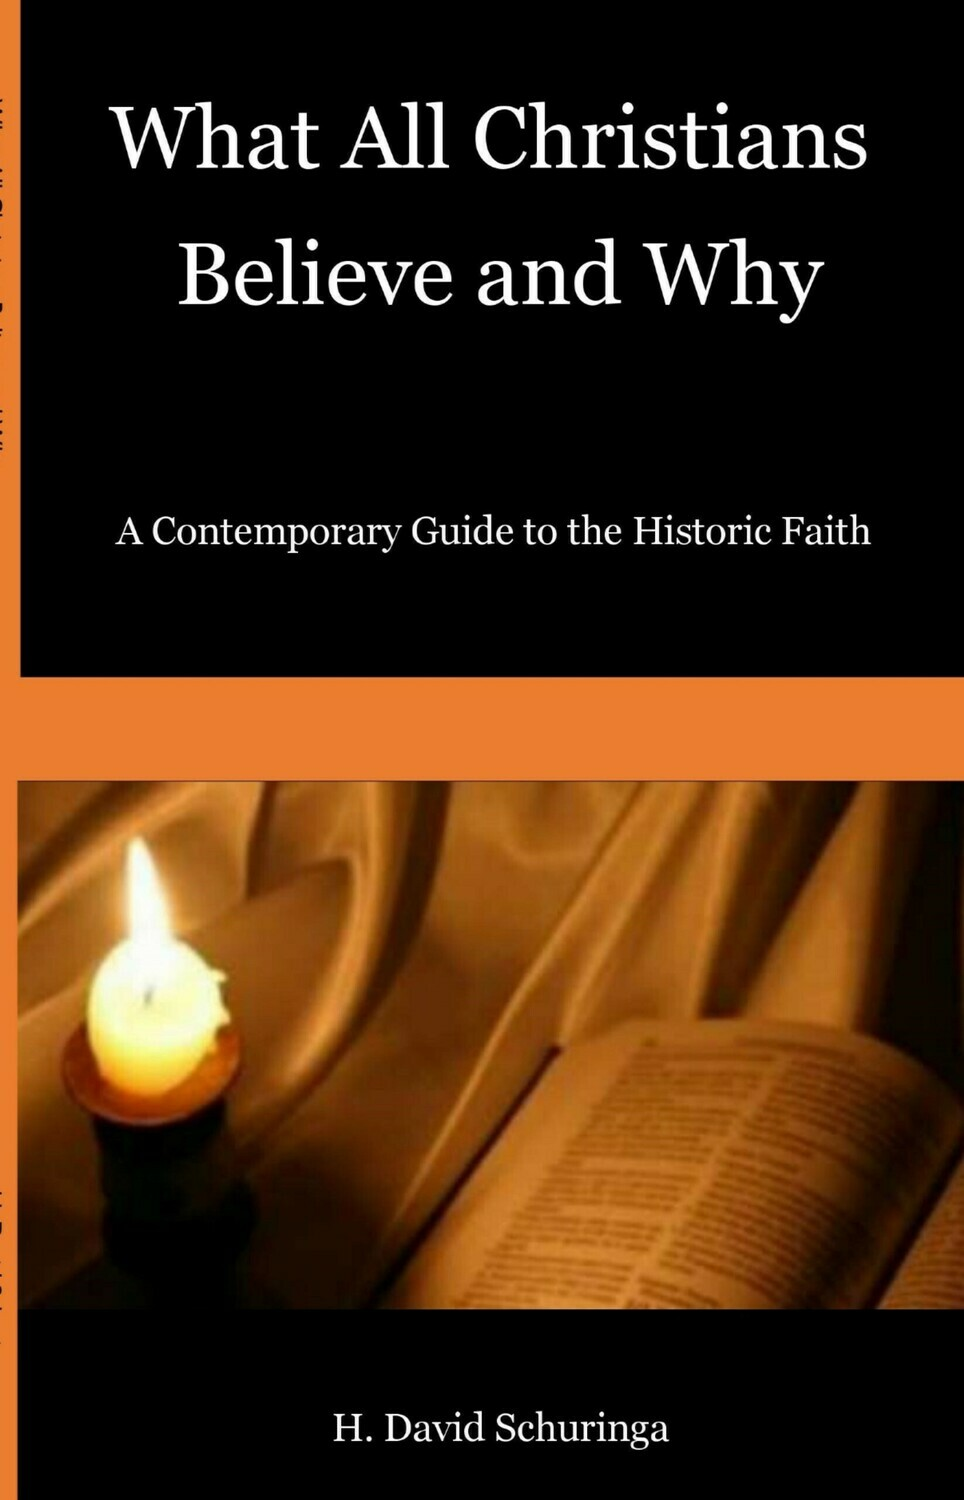 What All Christians Believe and Why: A Contemporary Guide to the Historic Faith by H. David Schuringa (Soft-Cover & E-Book)